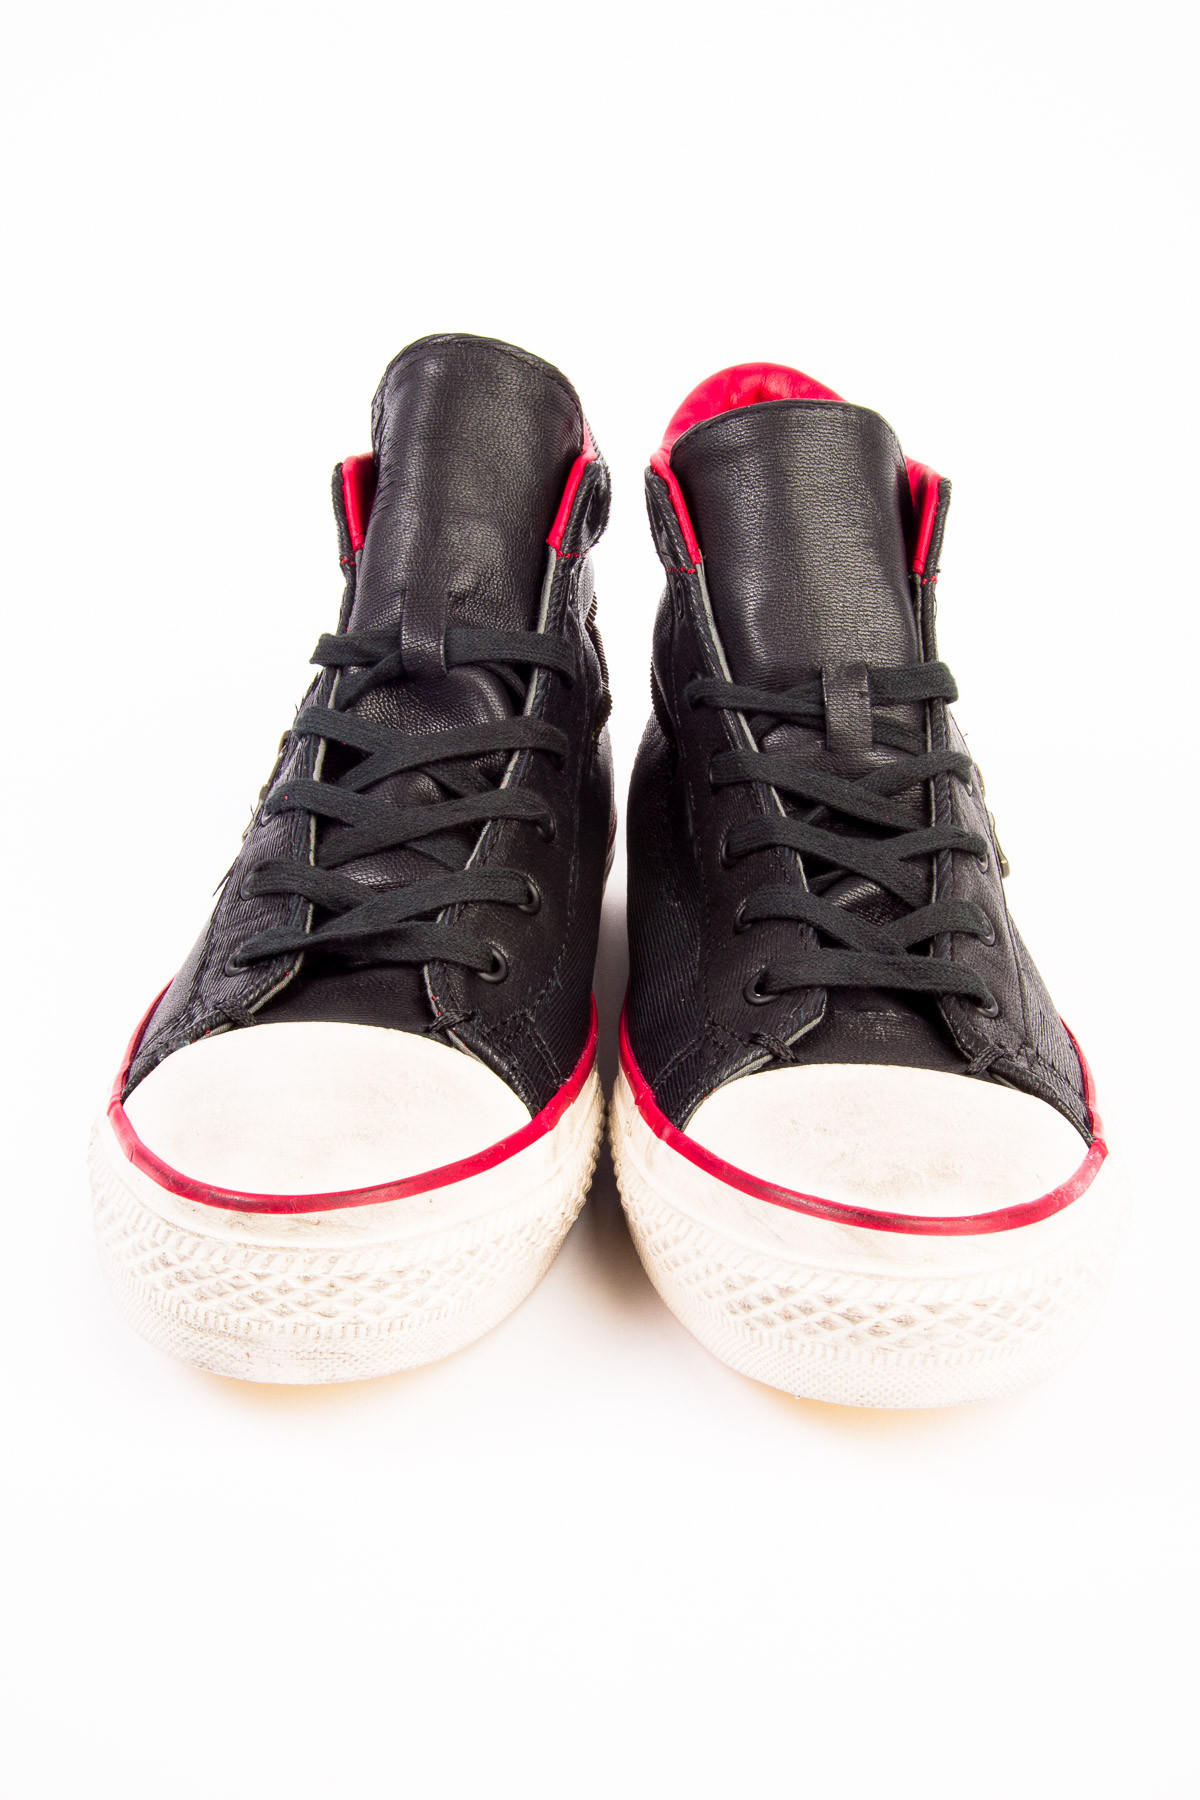 2d4e8040fc21 John Varvatos x Converse Scratched Leather Mid Back Zip Black Chili Sneaker